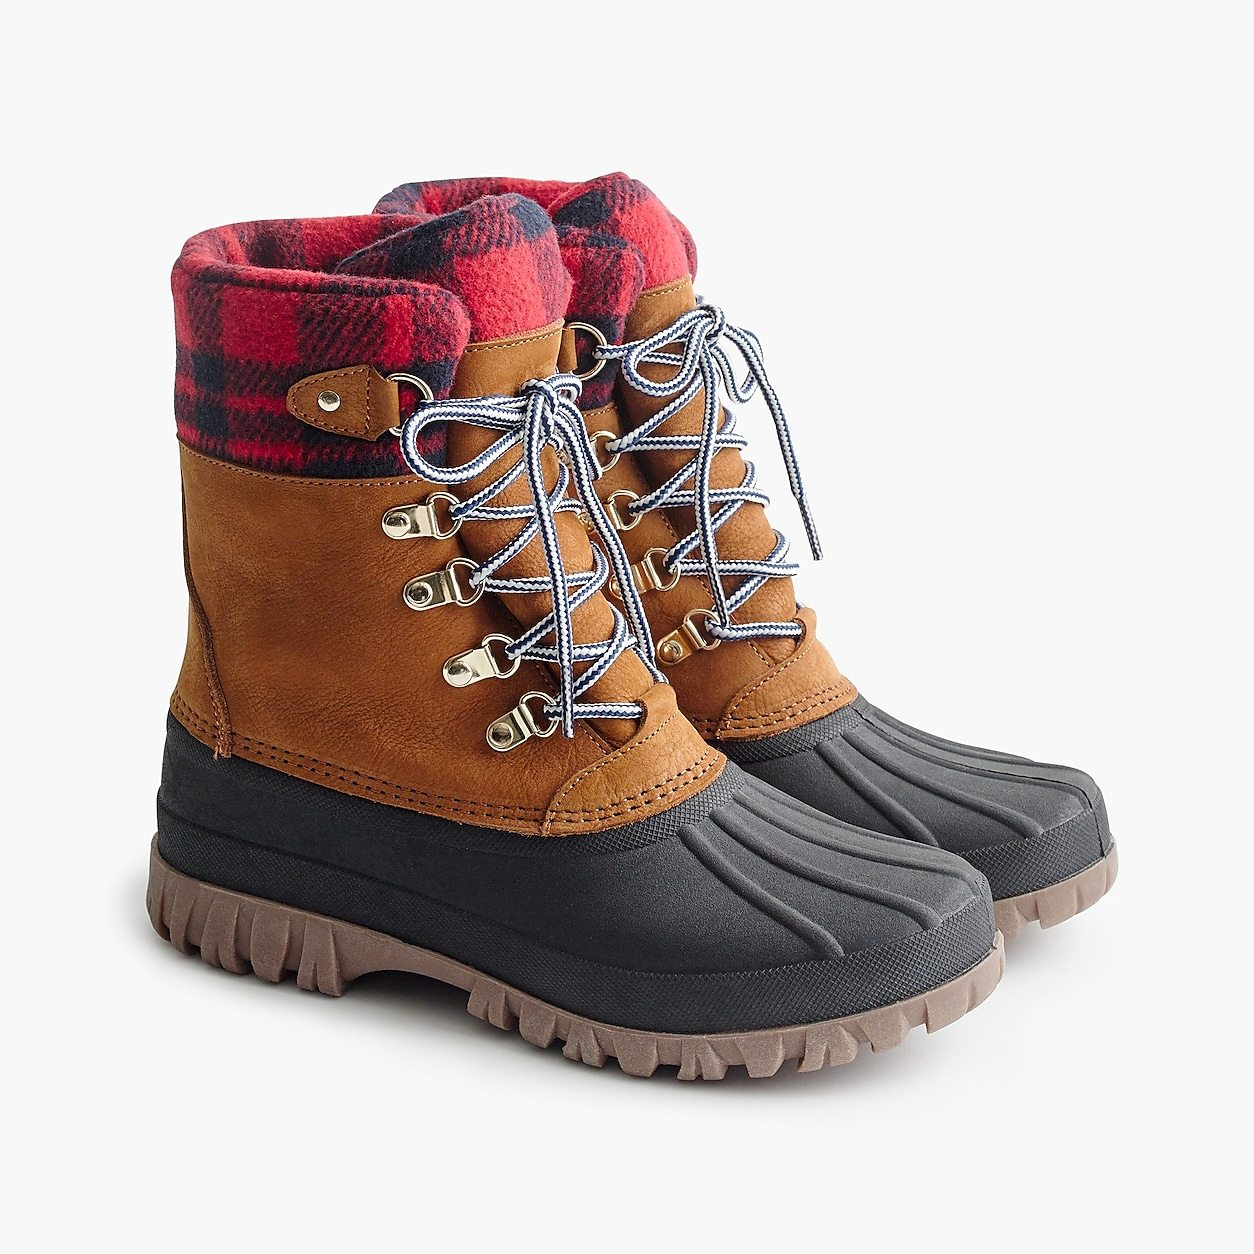 Perfect winter boots